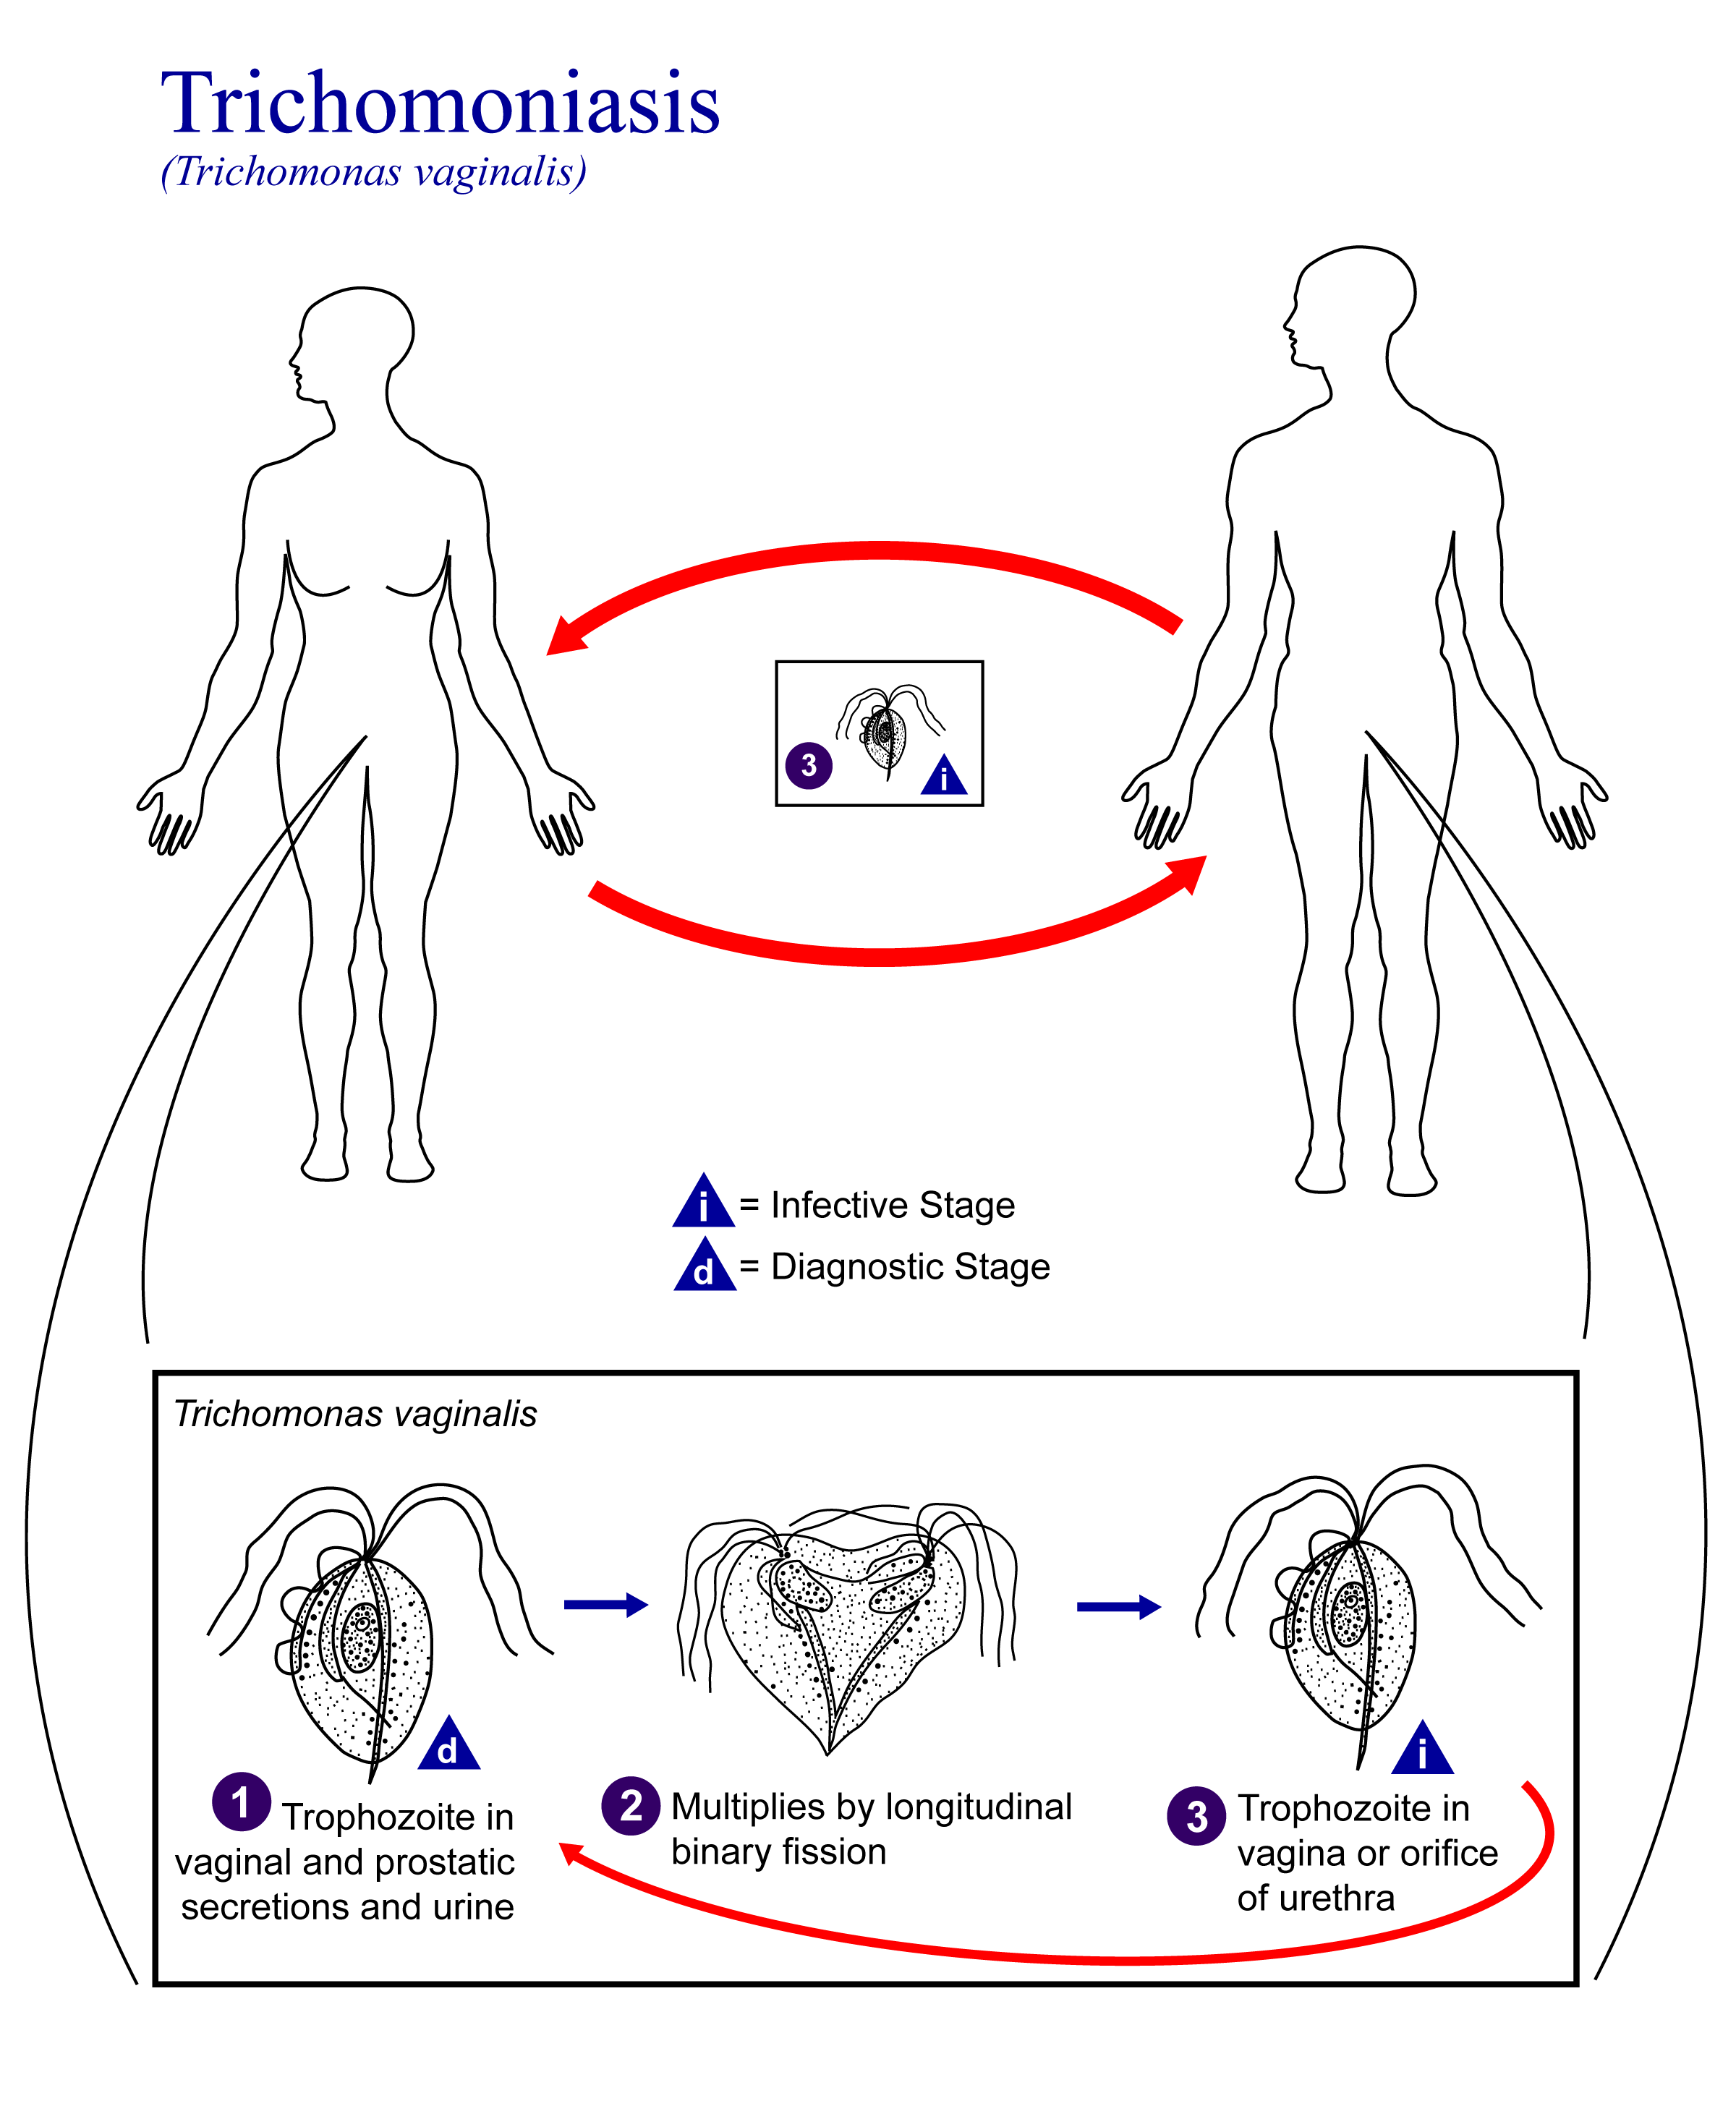 http://drugline.org/img/term/trichomoniasis-15325_3.png